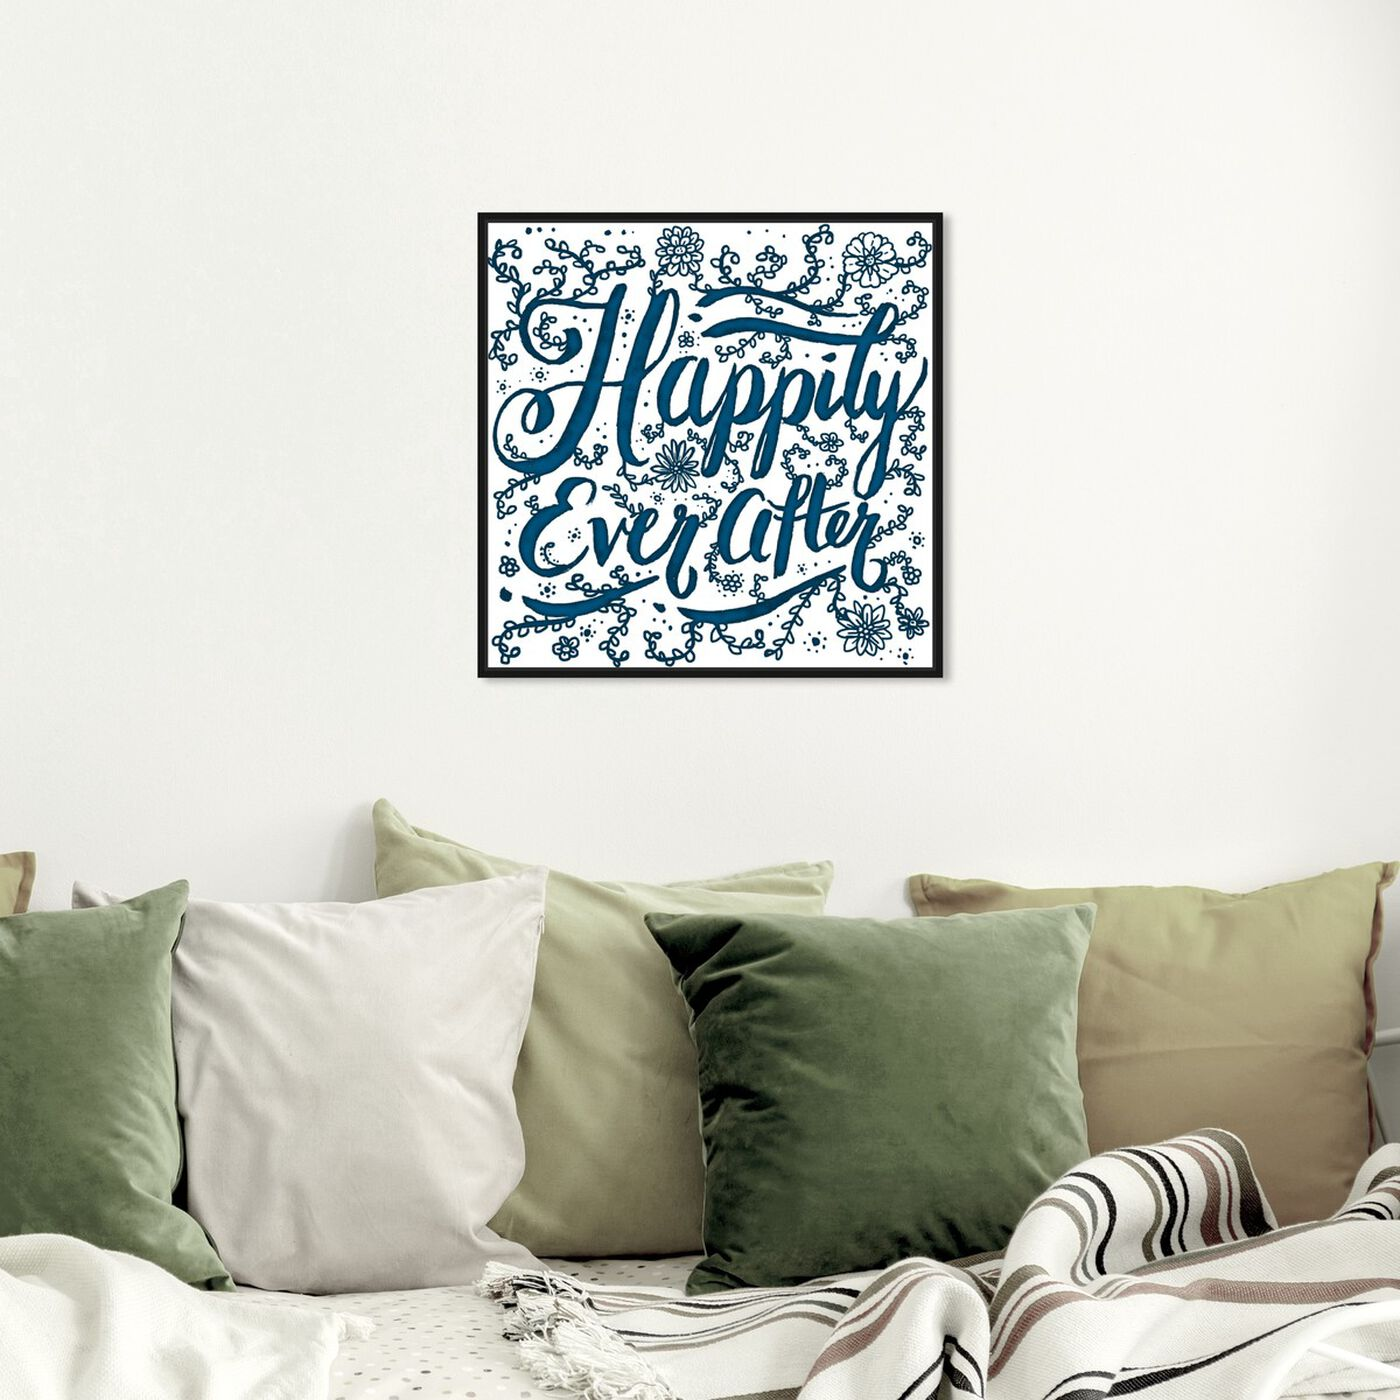 Hanging view of Happily Ever After featuring typography and quotes and family quotes and sayings art.